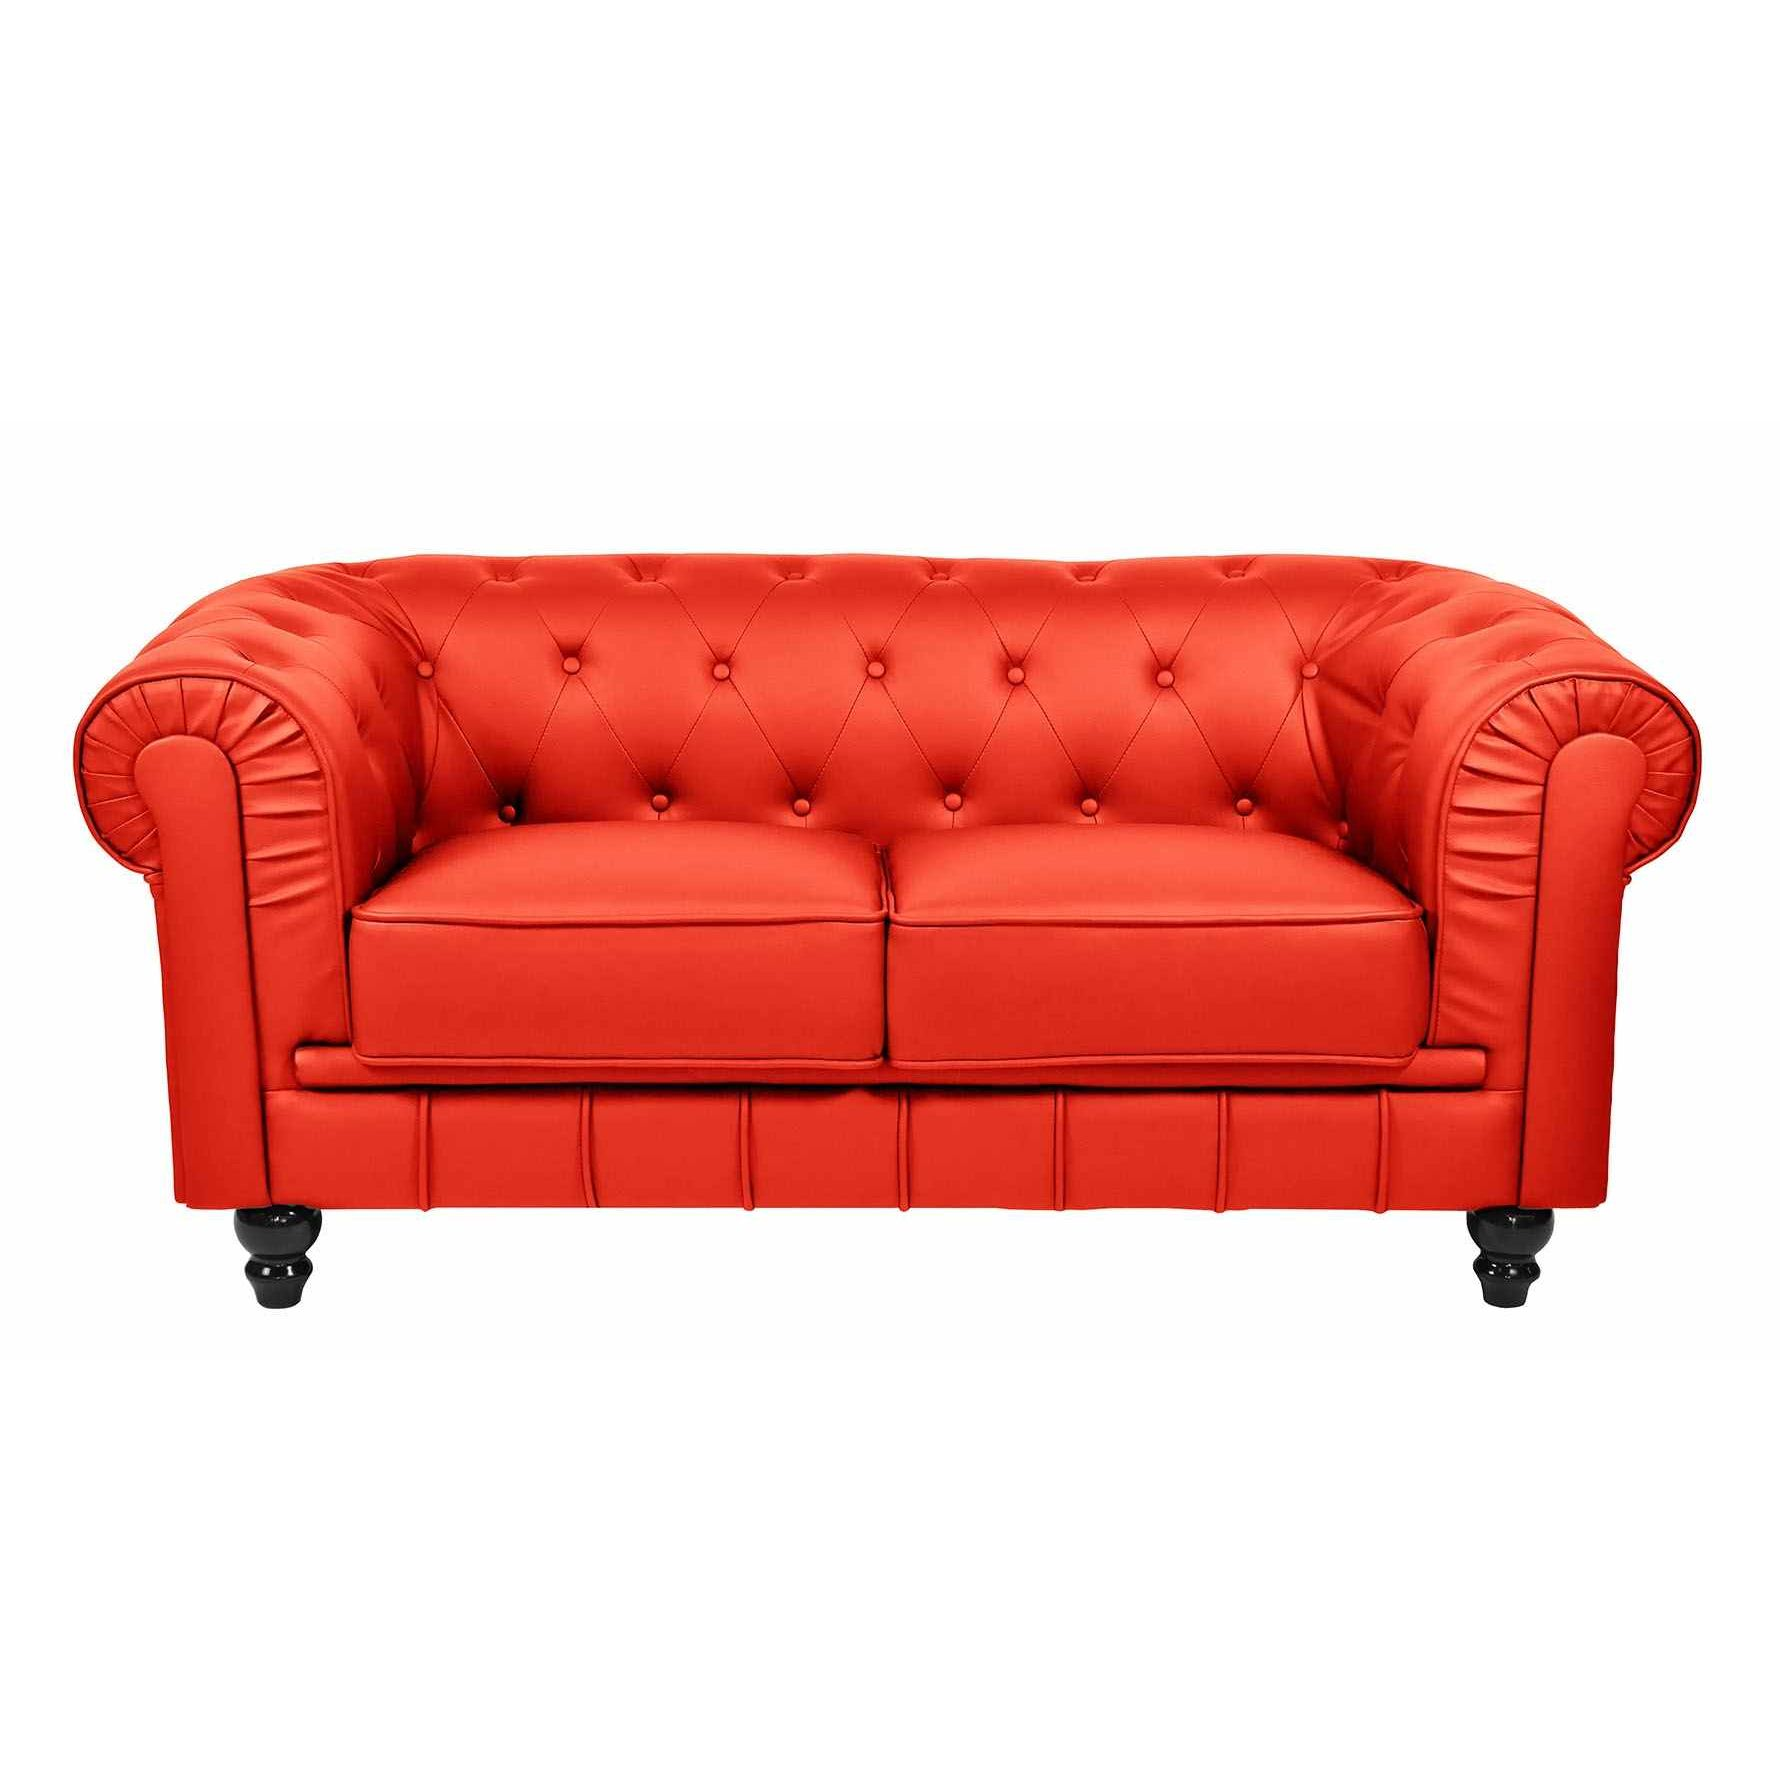 Deco in paris canape 2 places rouge chesterfield can chester 2p pu rouge - Canape chesterfield 2 places ...